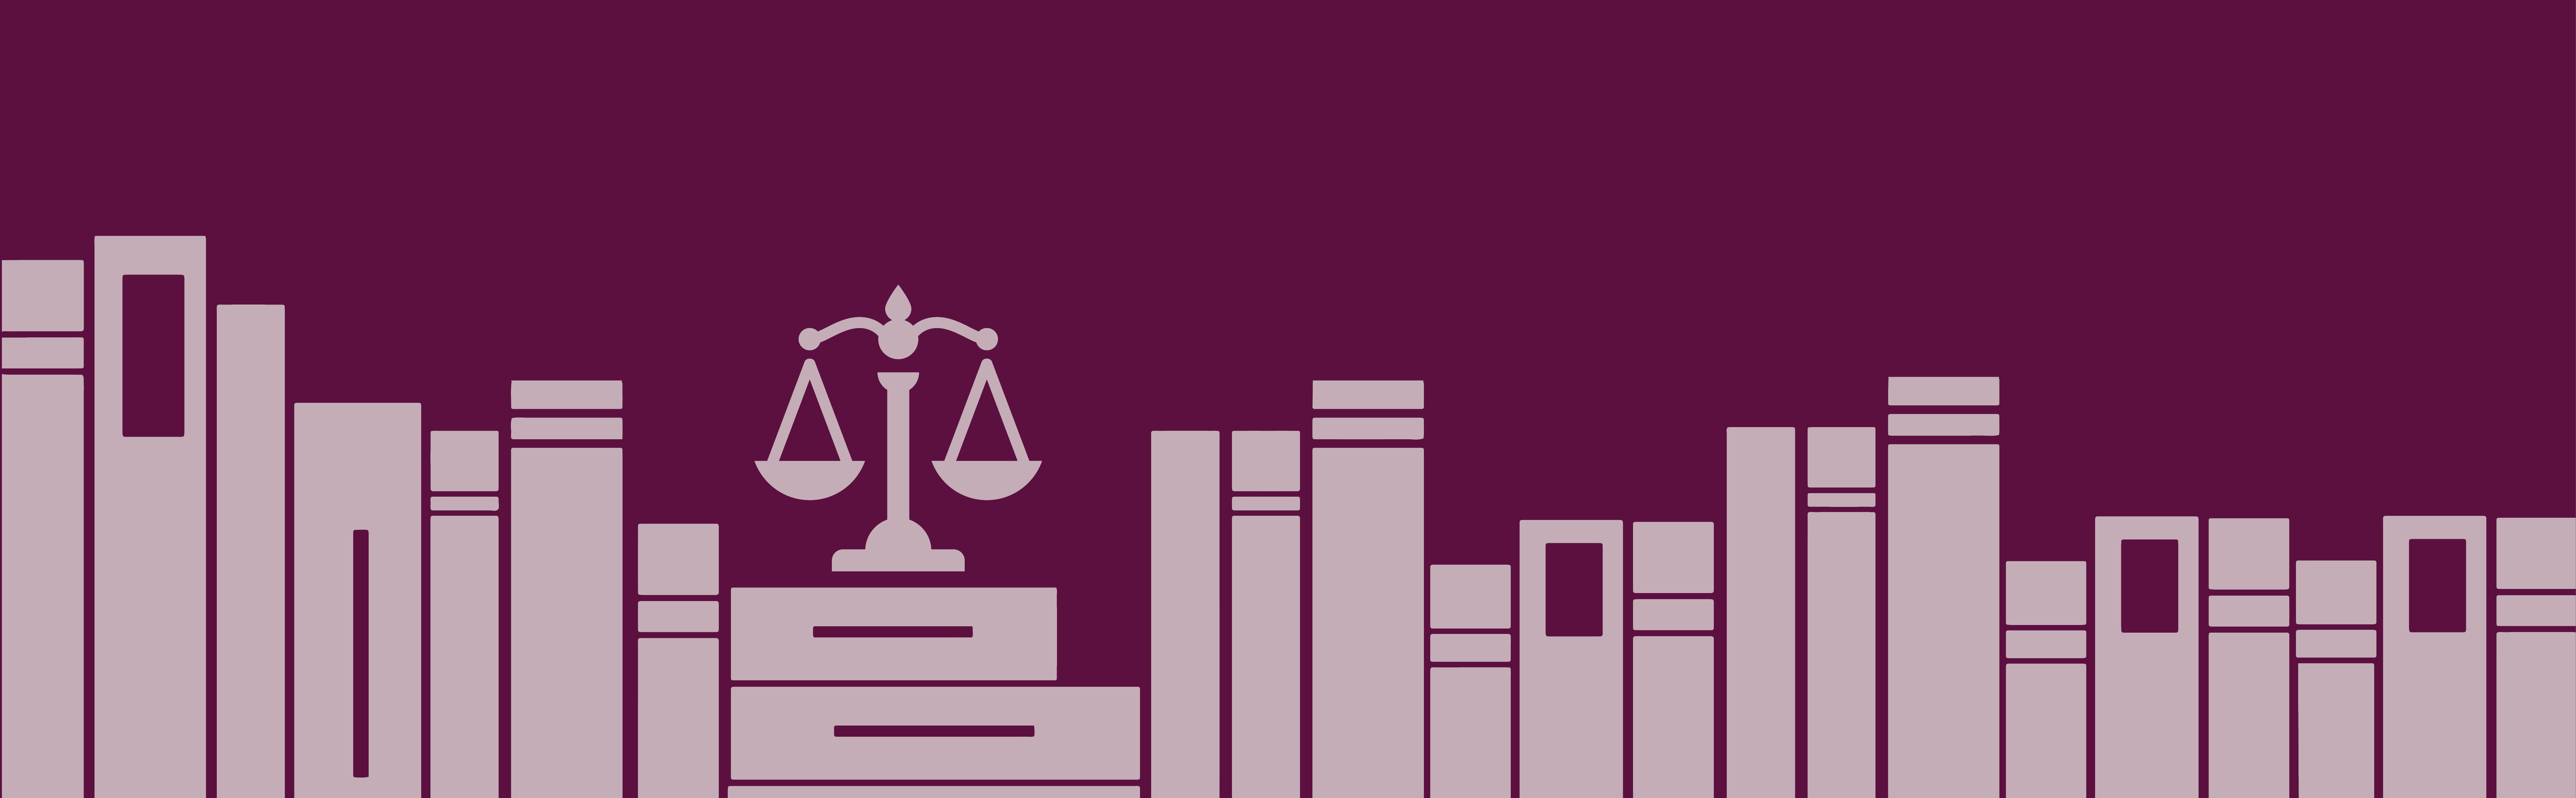 Digital Legal Library header - shelf of books and a scale of justice